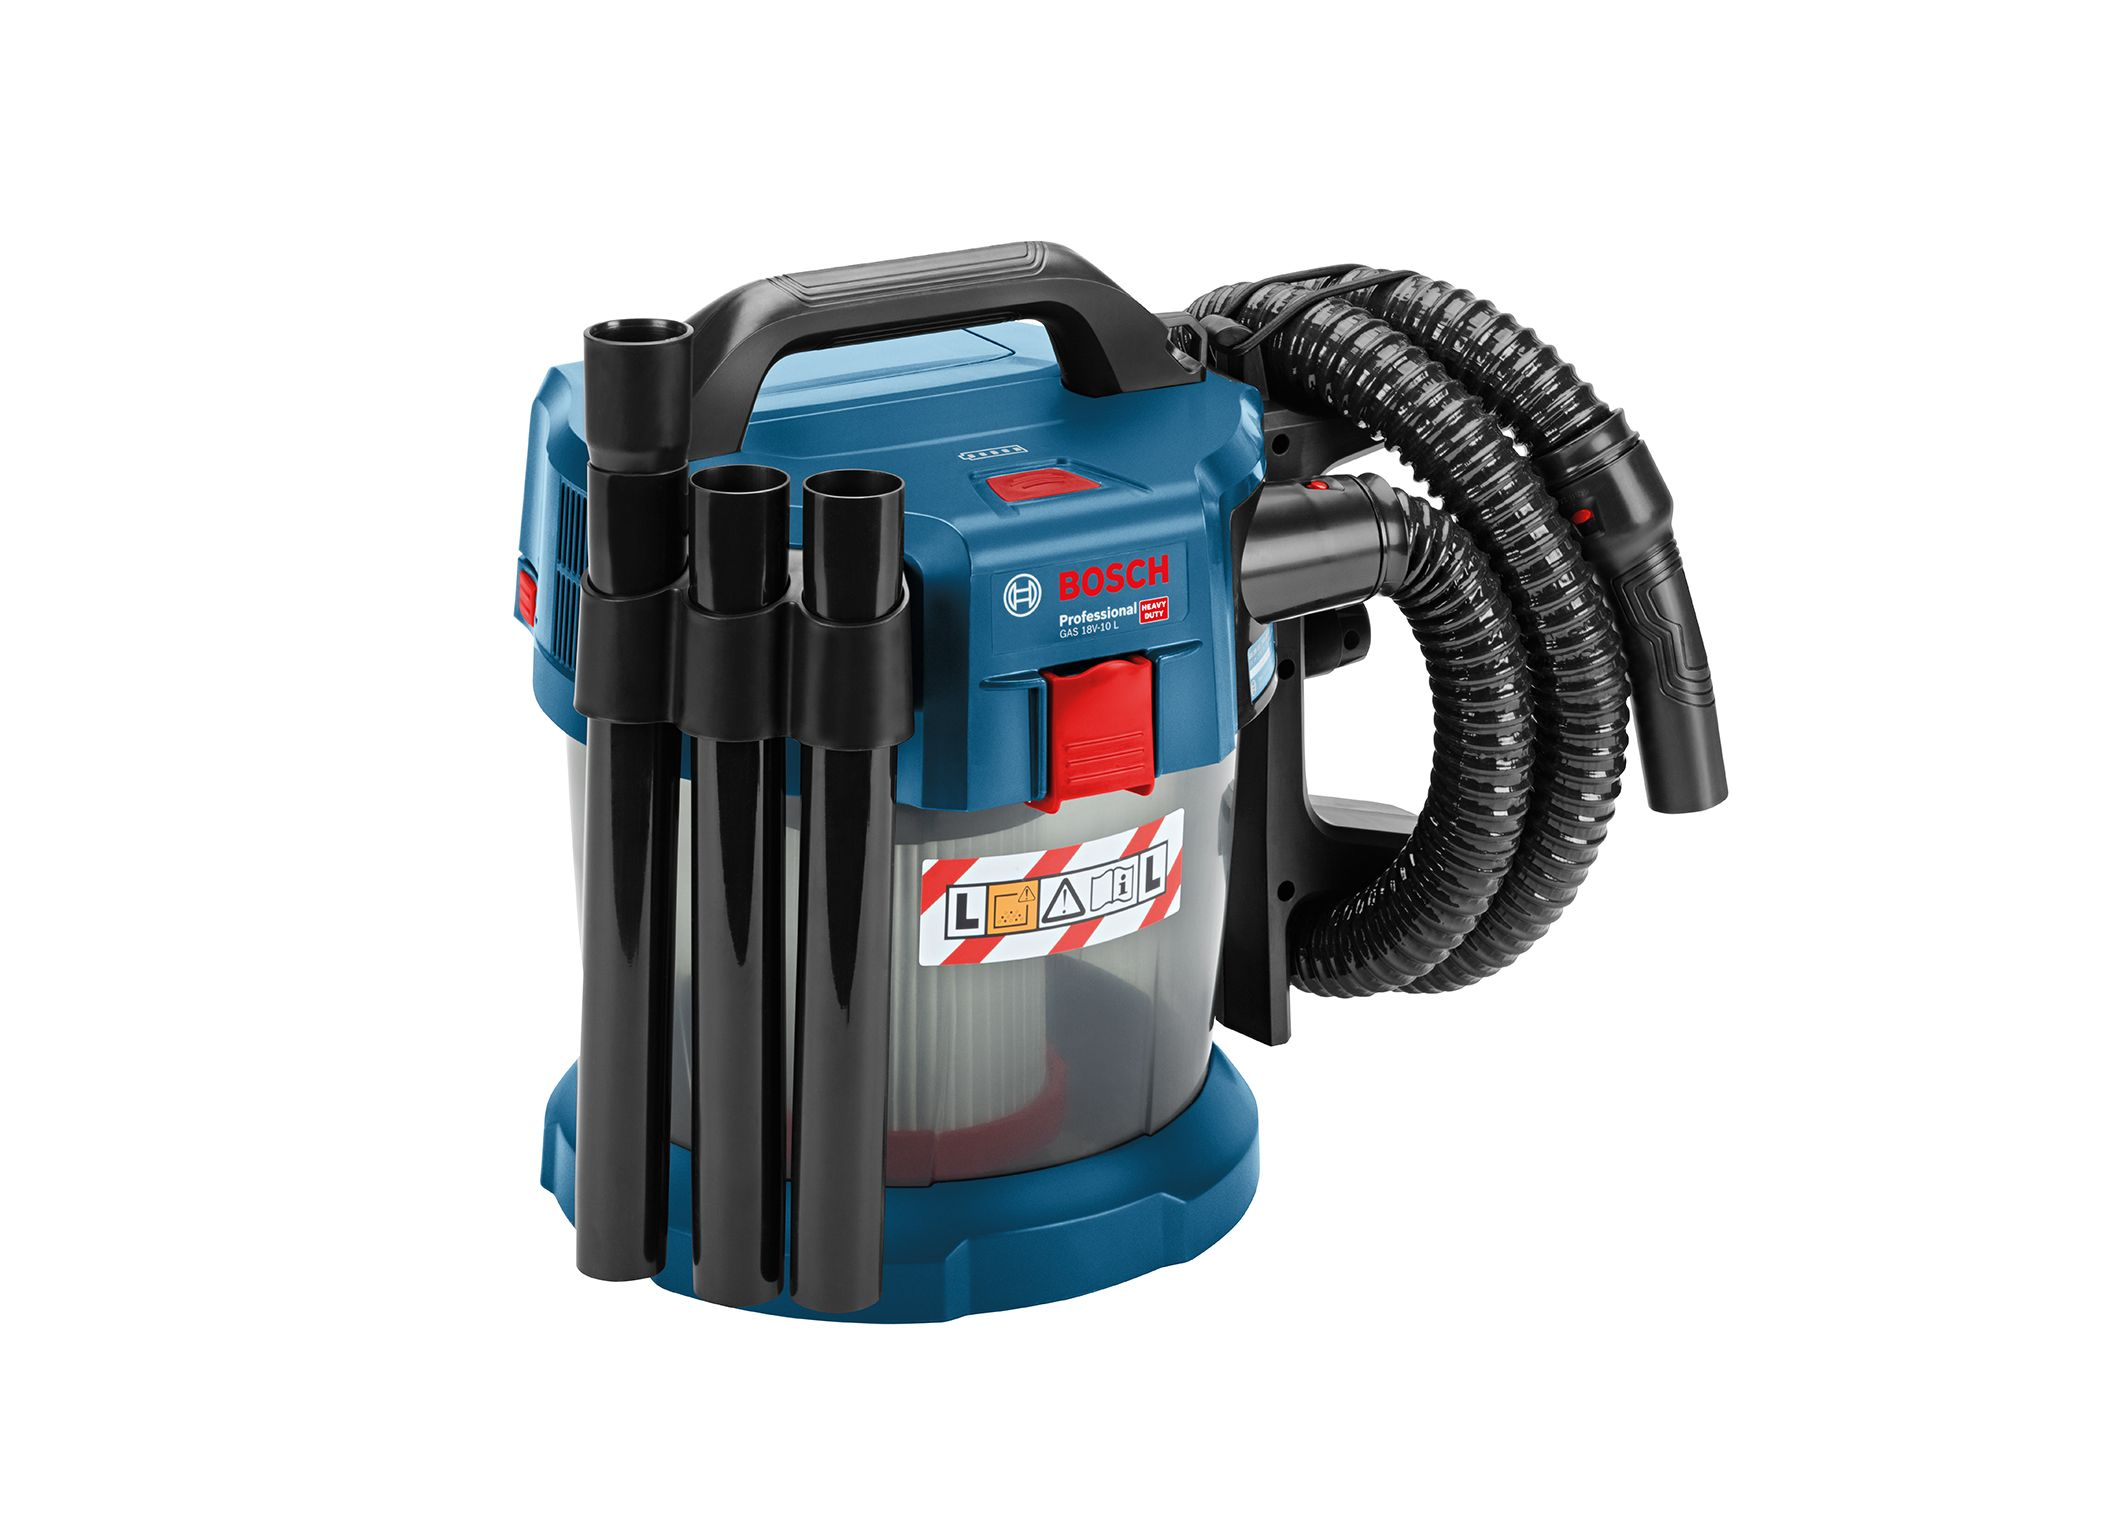 Great Whirl Little Dust Thanks To Rotational Air Flow The Gas 18v 10 L Professional Wet Dry Extractor From Bosch For Professio Bosch Vacuums Cordless Vacuum